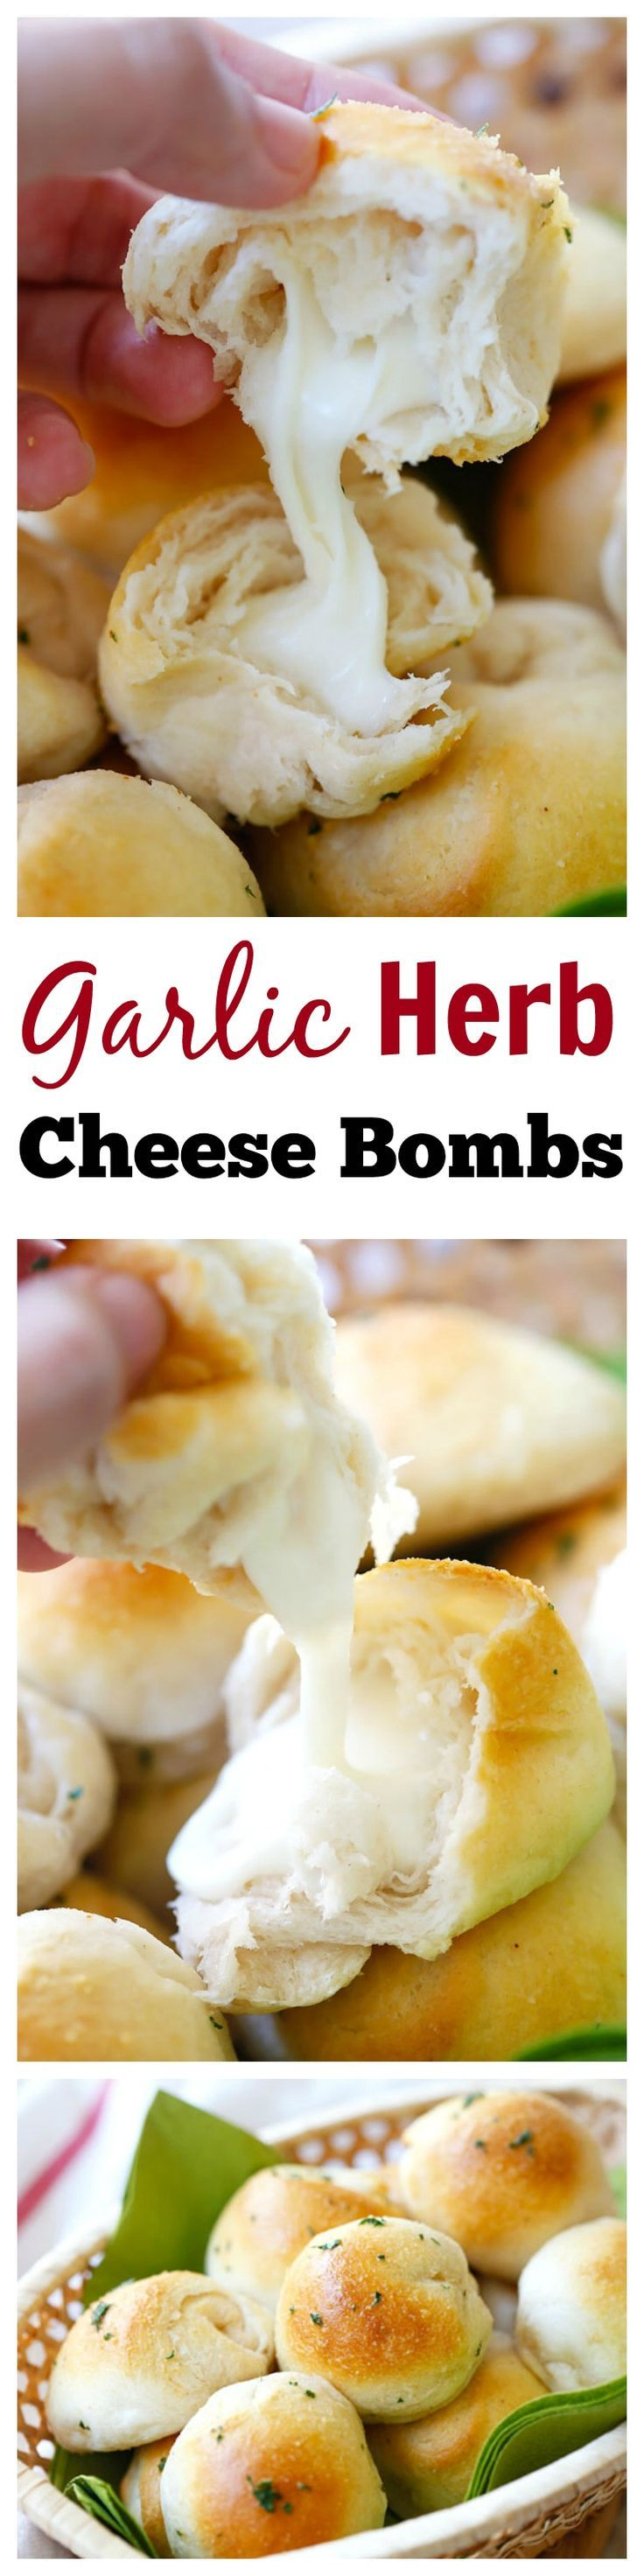 Garlic Herb Cheese Bombs – amazing cheese bomb biscuits loaded with Mozzarella cheese and topped with garlic herb butter. Easy recipe that takes 20 mins. @lovebakesgood | rasamalaysia.com | #cheese